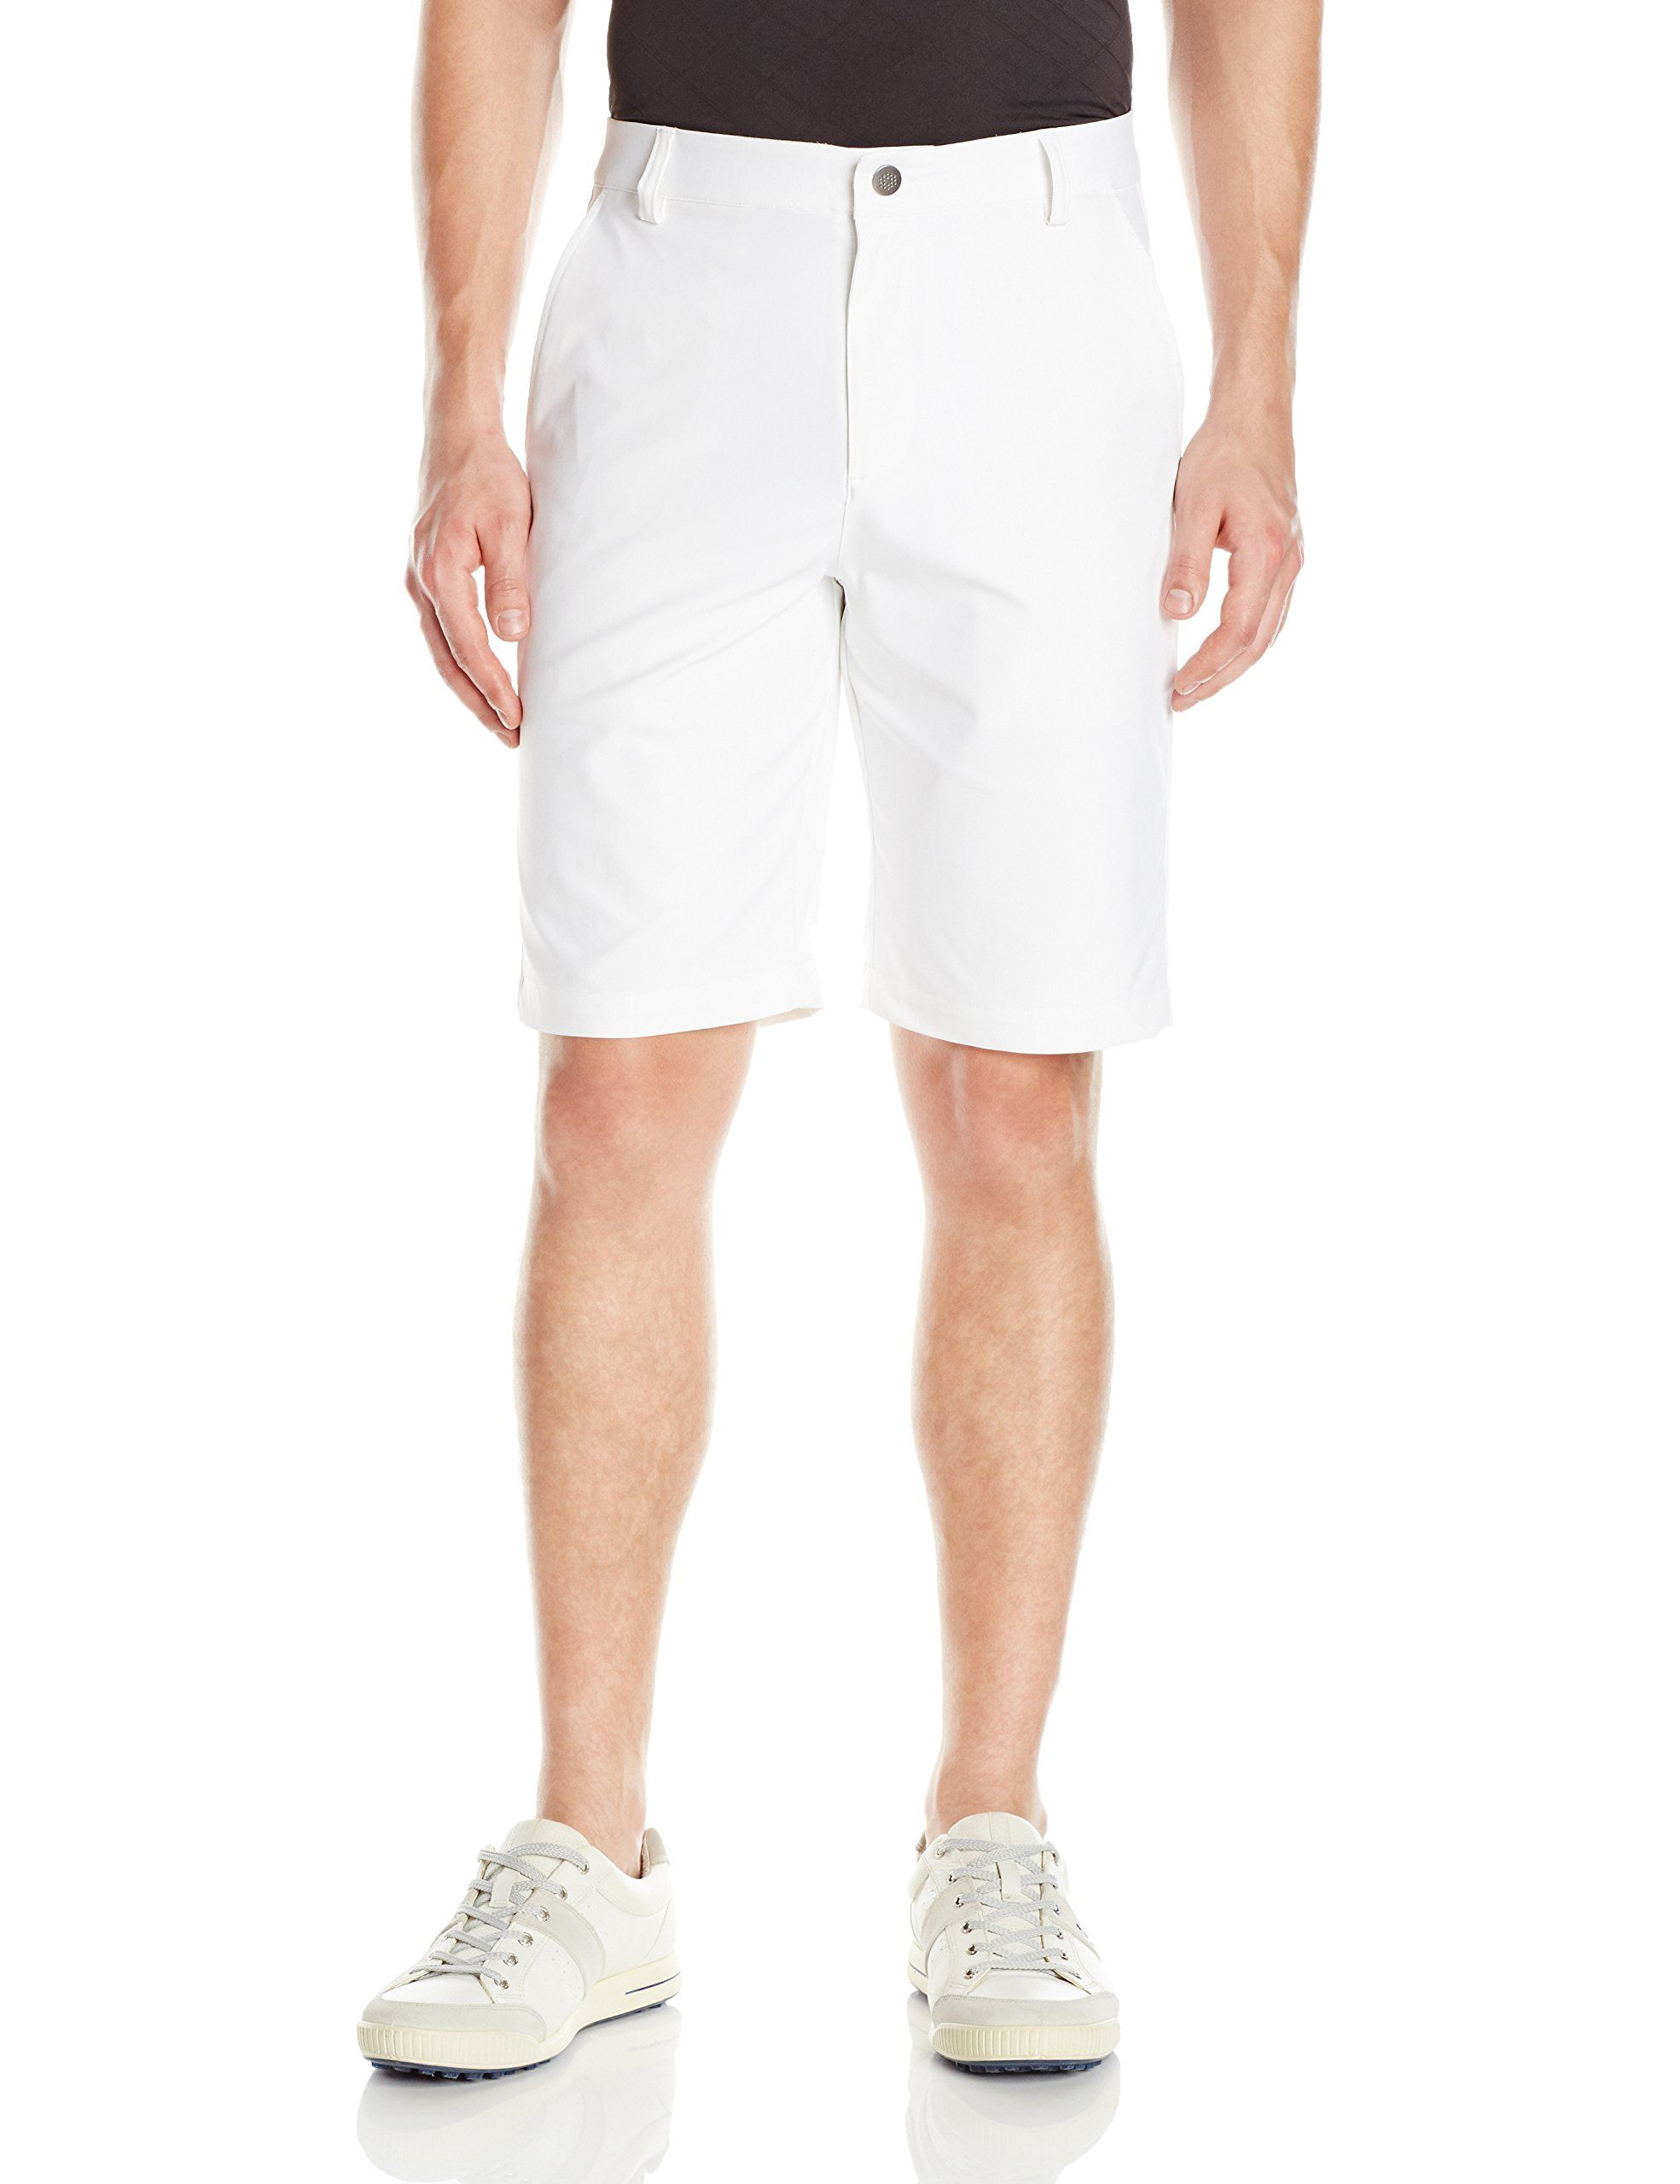 22aaa634d771 Men Golf Clothing - PUMA Golf Mens Essential Pounce Shorts Bright White  Size 32